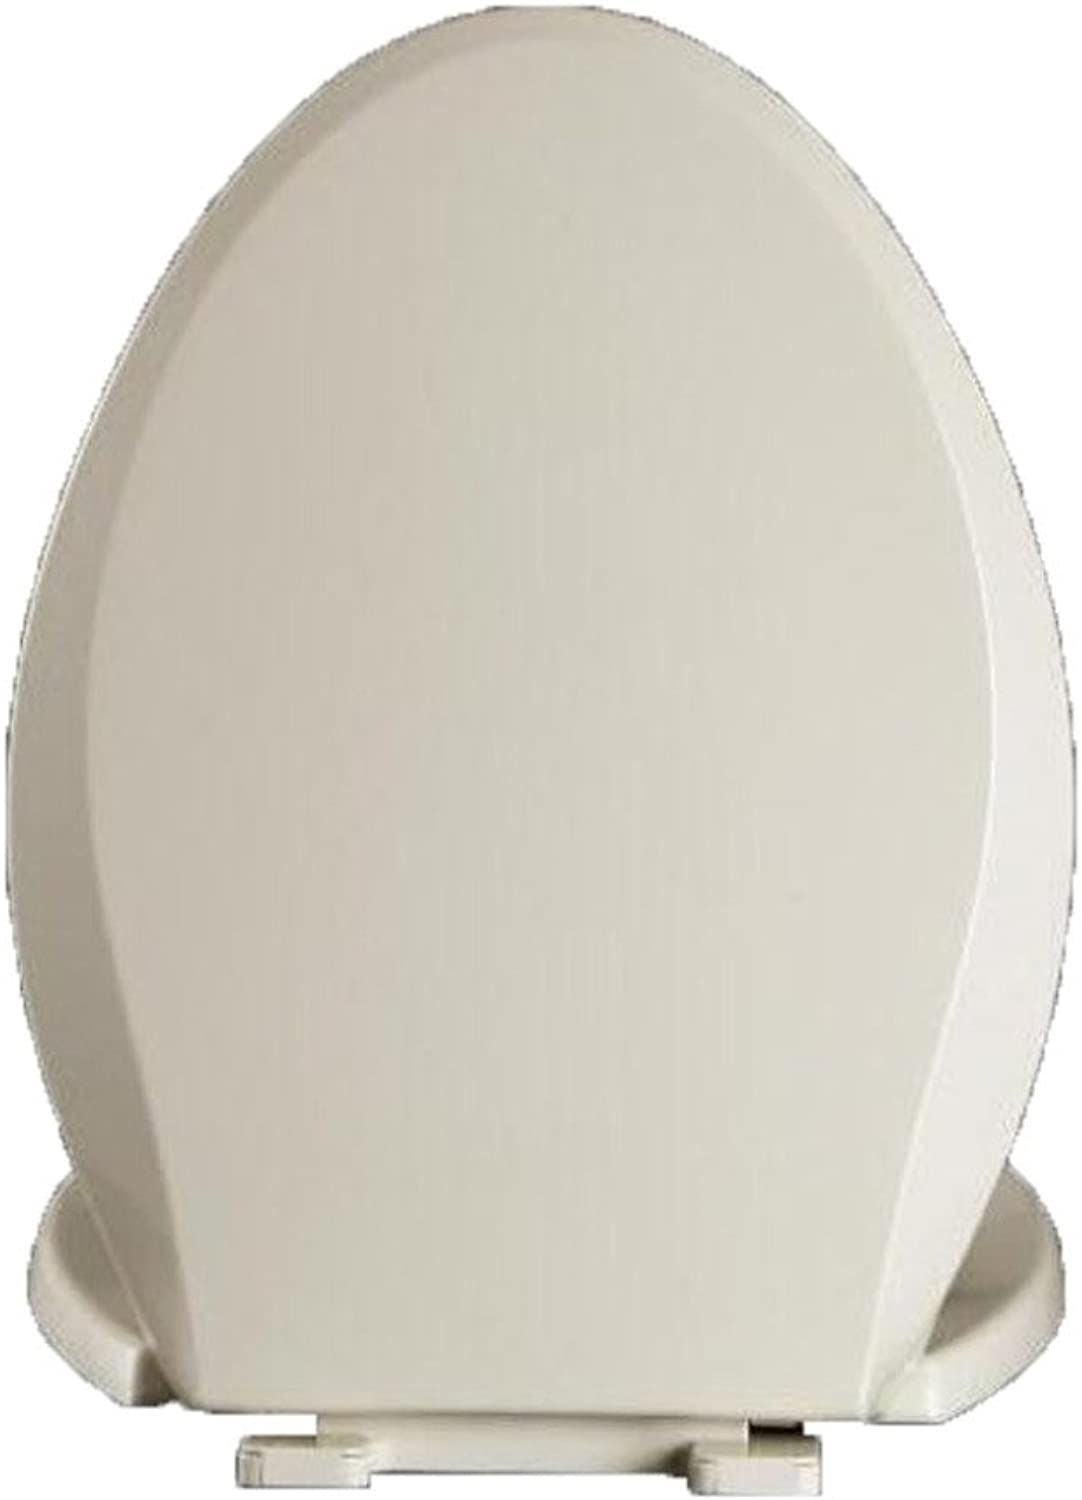 Toilet Seat V-Style Toilet Lid with Slow Down Easy to Install Toilet Seat Cover for Bathroom and washroom